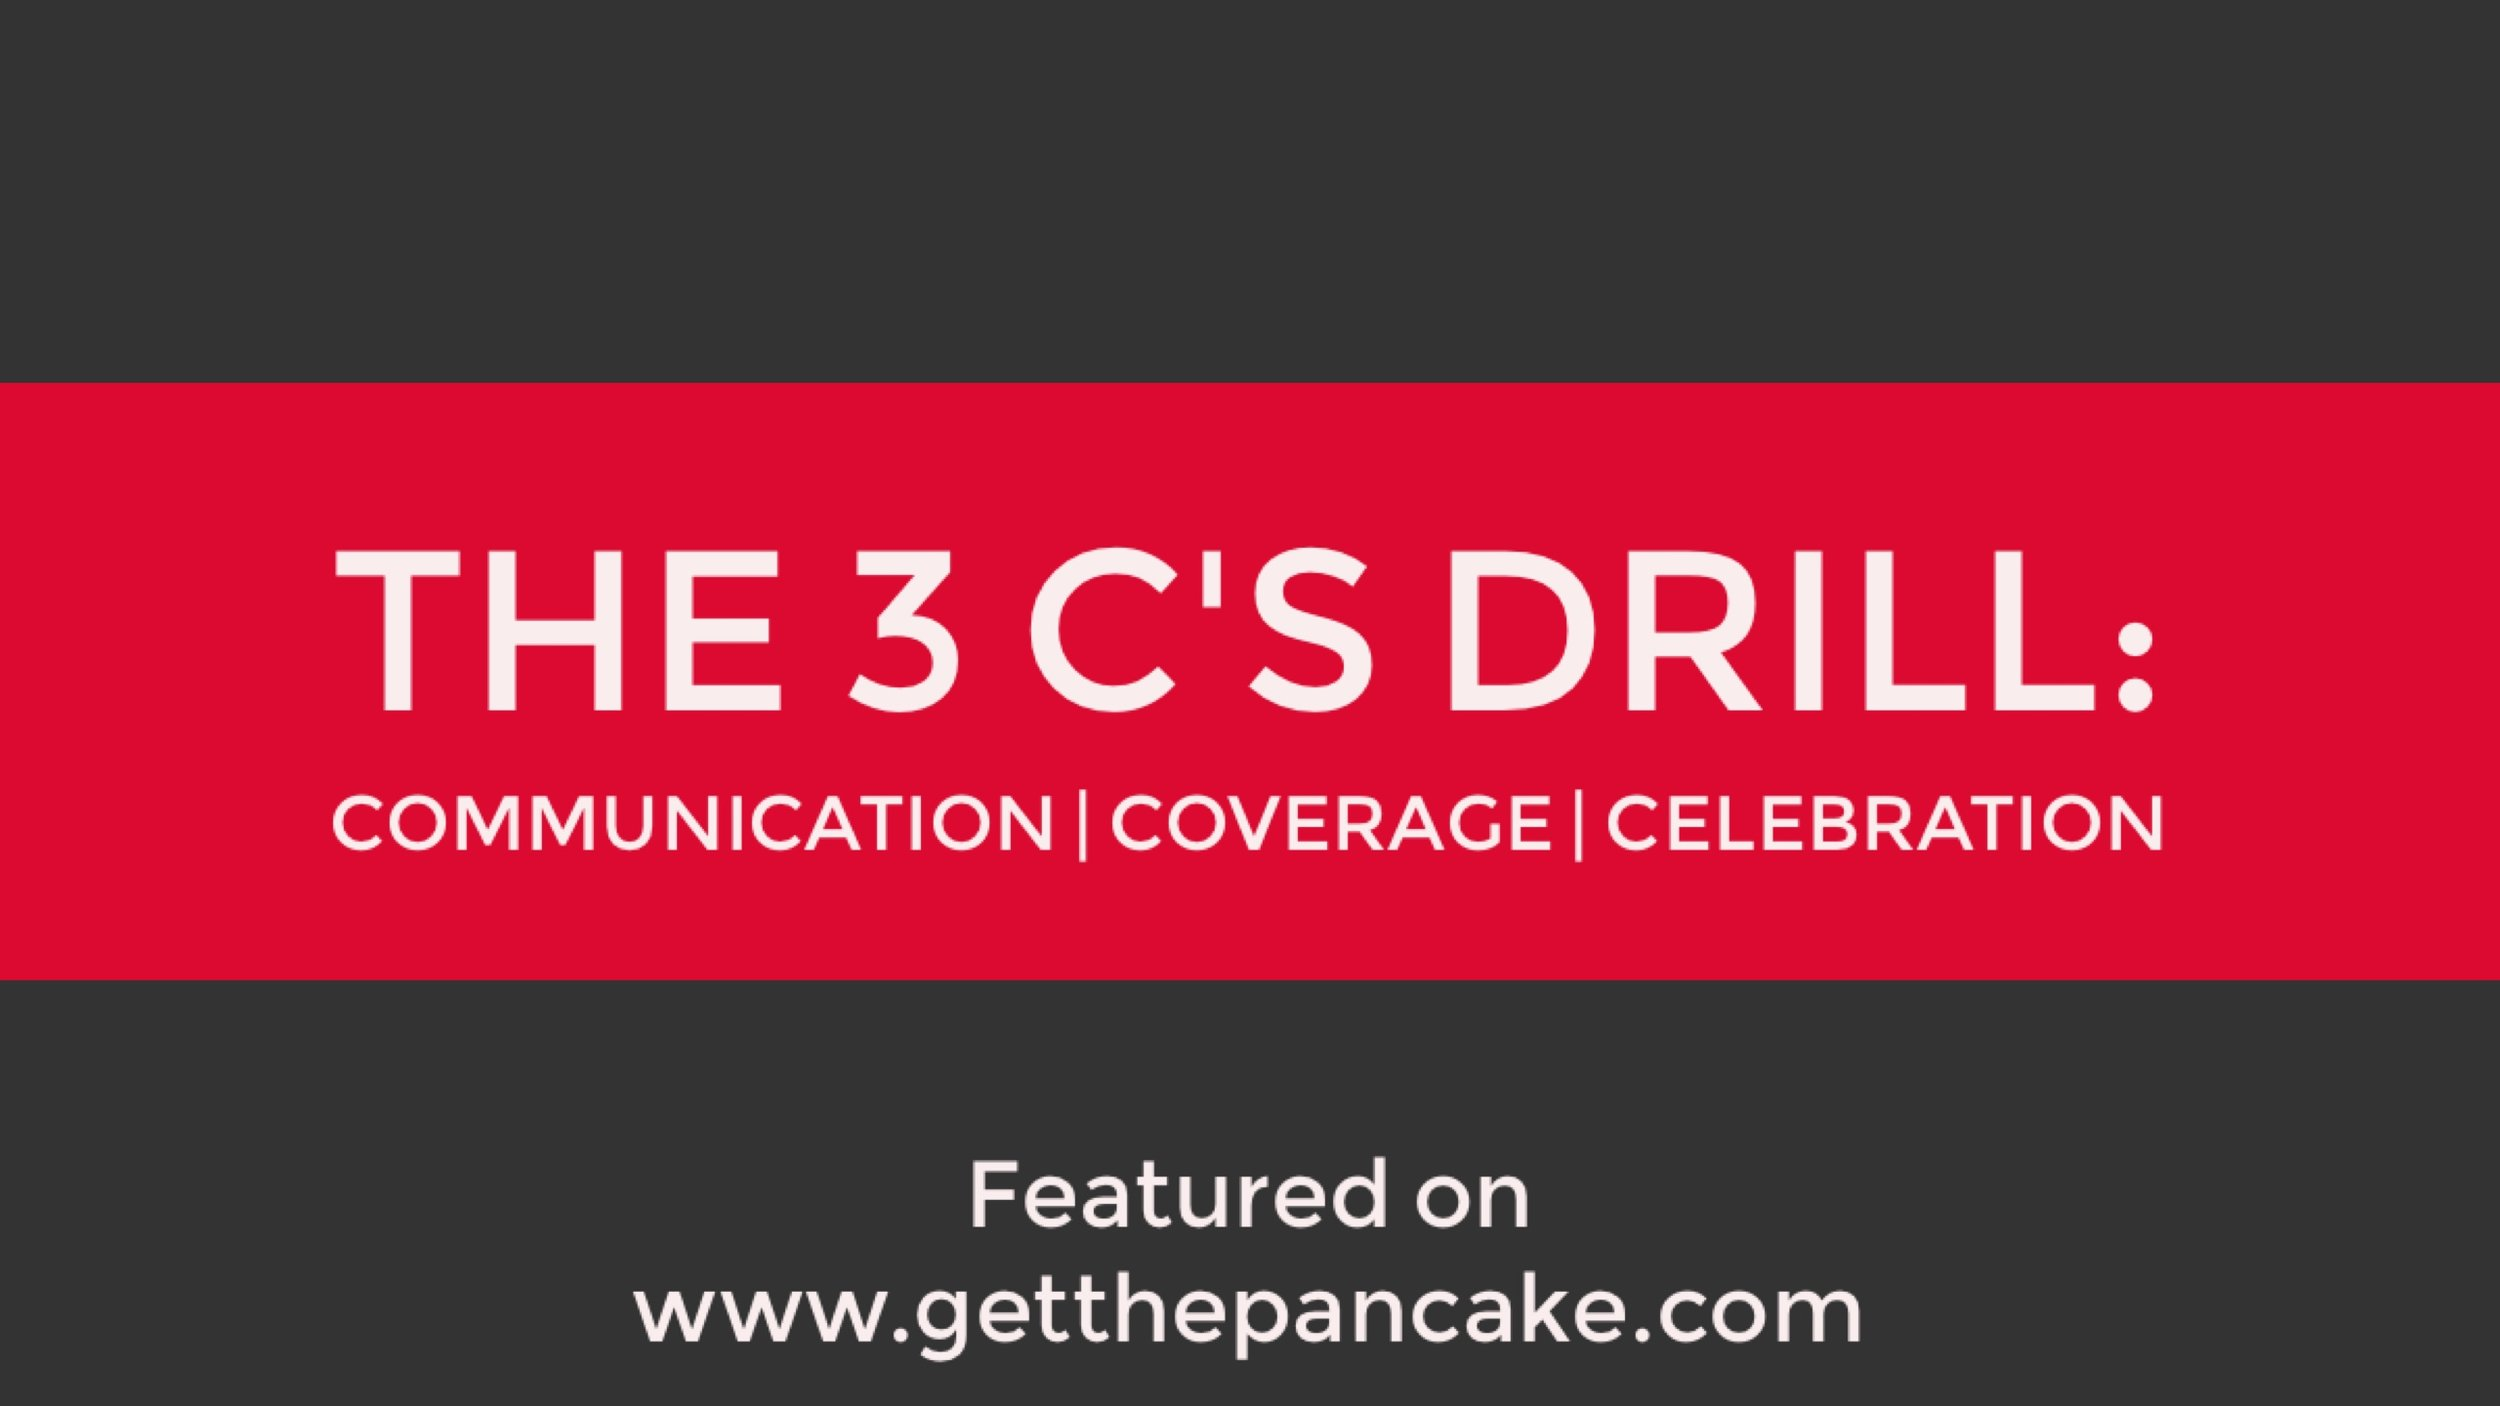 The 3 C's Drill: Communication, Coverage, and Celebration